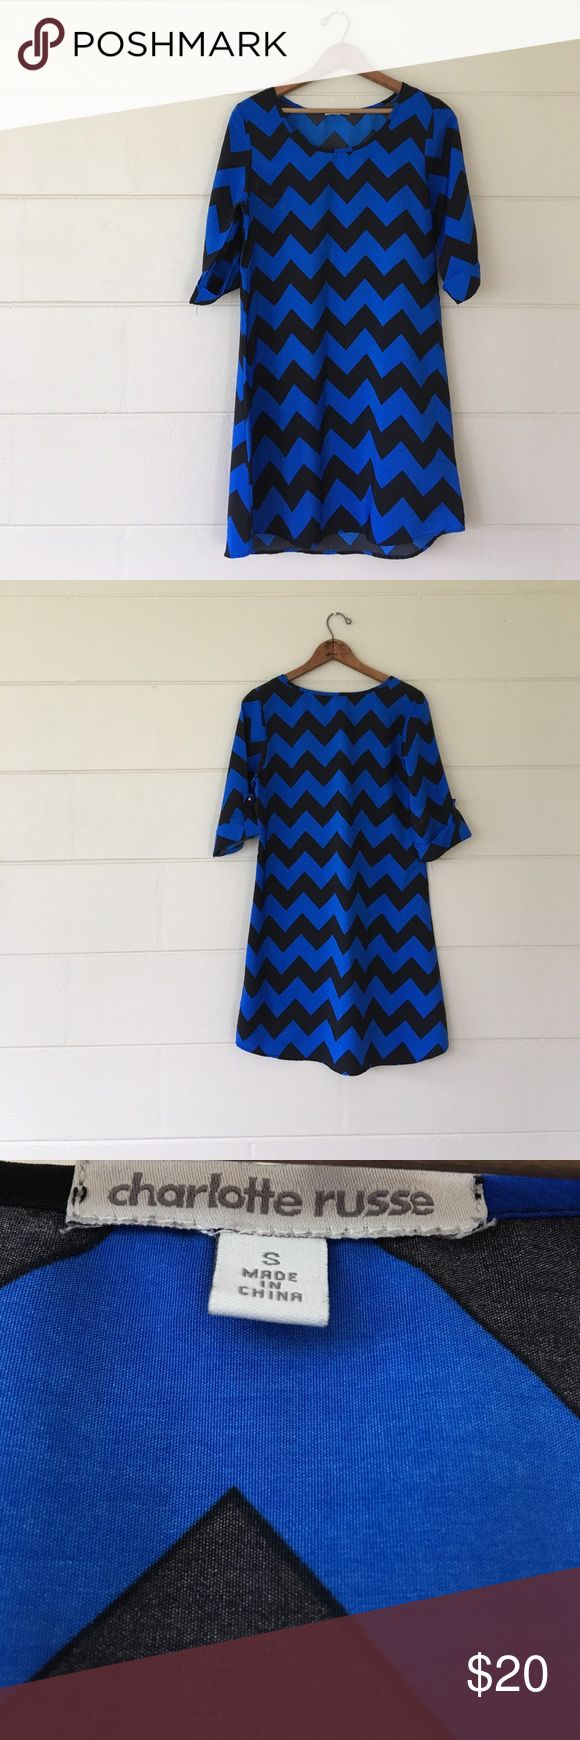 Charlotte Russe chevron print dress Charlotte Russe brand size small blue and black chevron print dress. Bust is 36 inches length is 32.5 inches waist is 37 inches. 100% polyester. Only worn once for presentation. In excellent condition. Charlotte Russe Dresses Midi